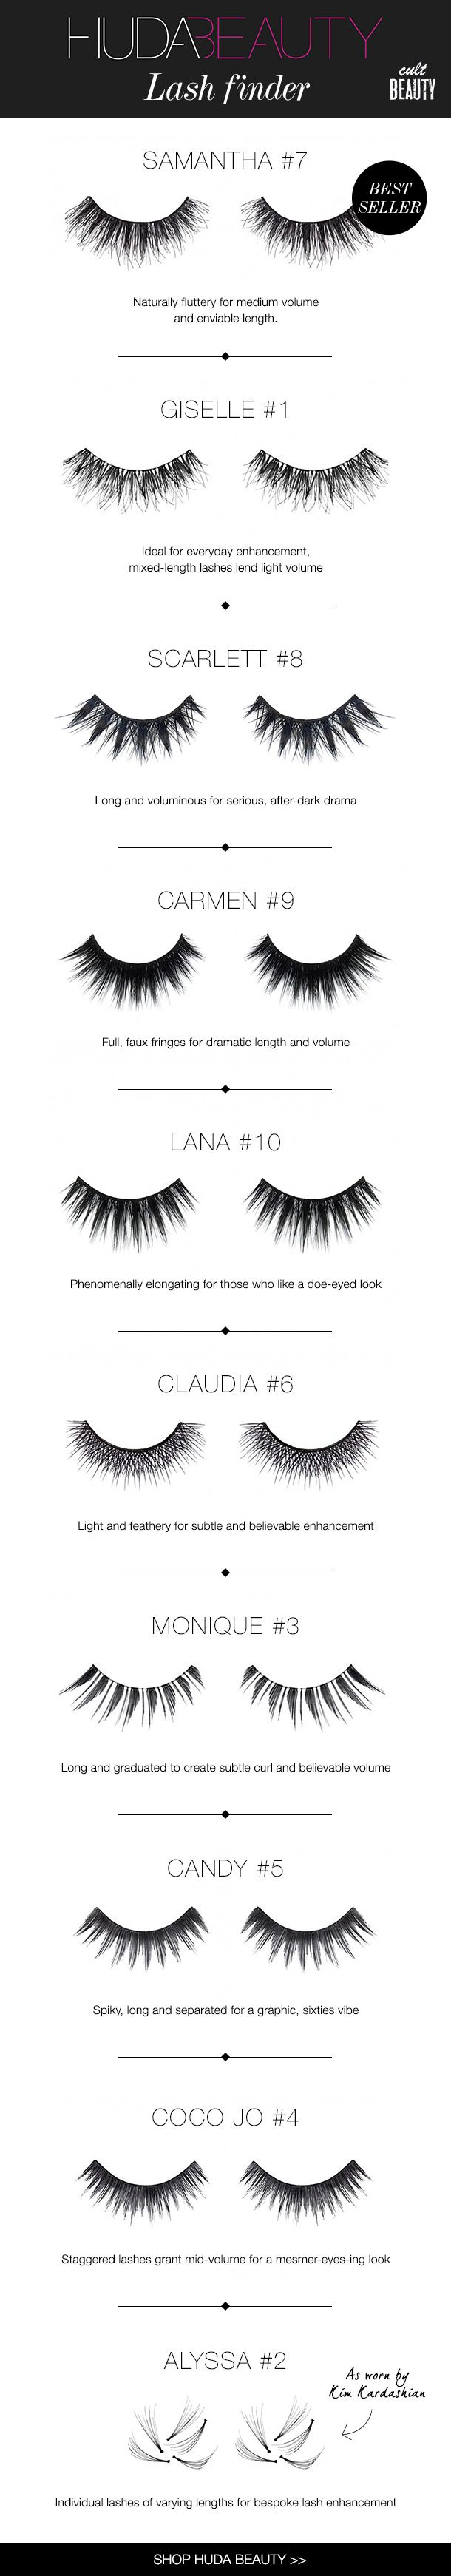 Huda beauty  Am obsessed with these eyelashes! They are so Stunning!! In the UK can be found on 'cultbeauty' !!!!!